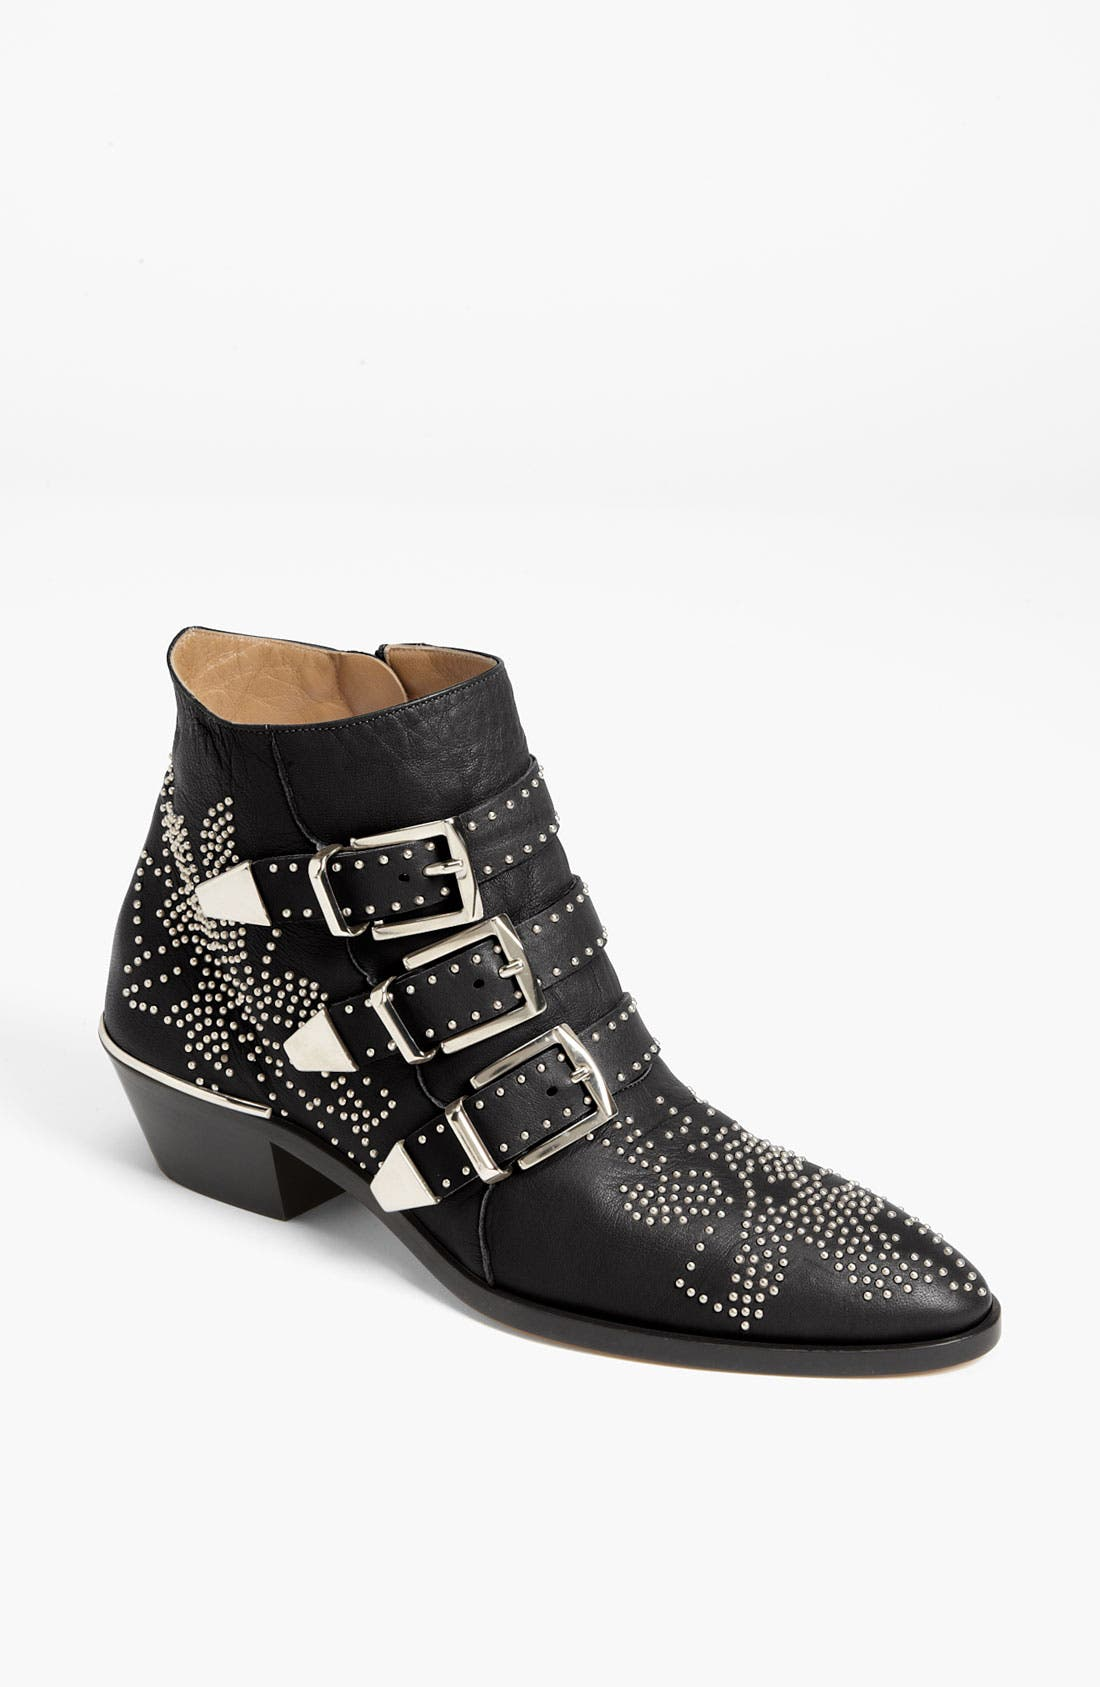 Alternate Image 1 Selected - Chloé 'Suzanna' Stud Buckle Bootie